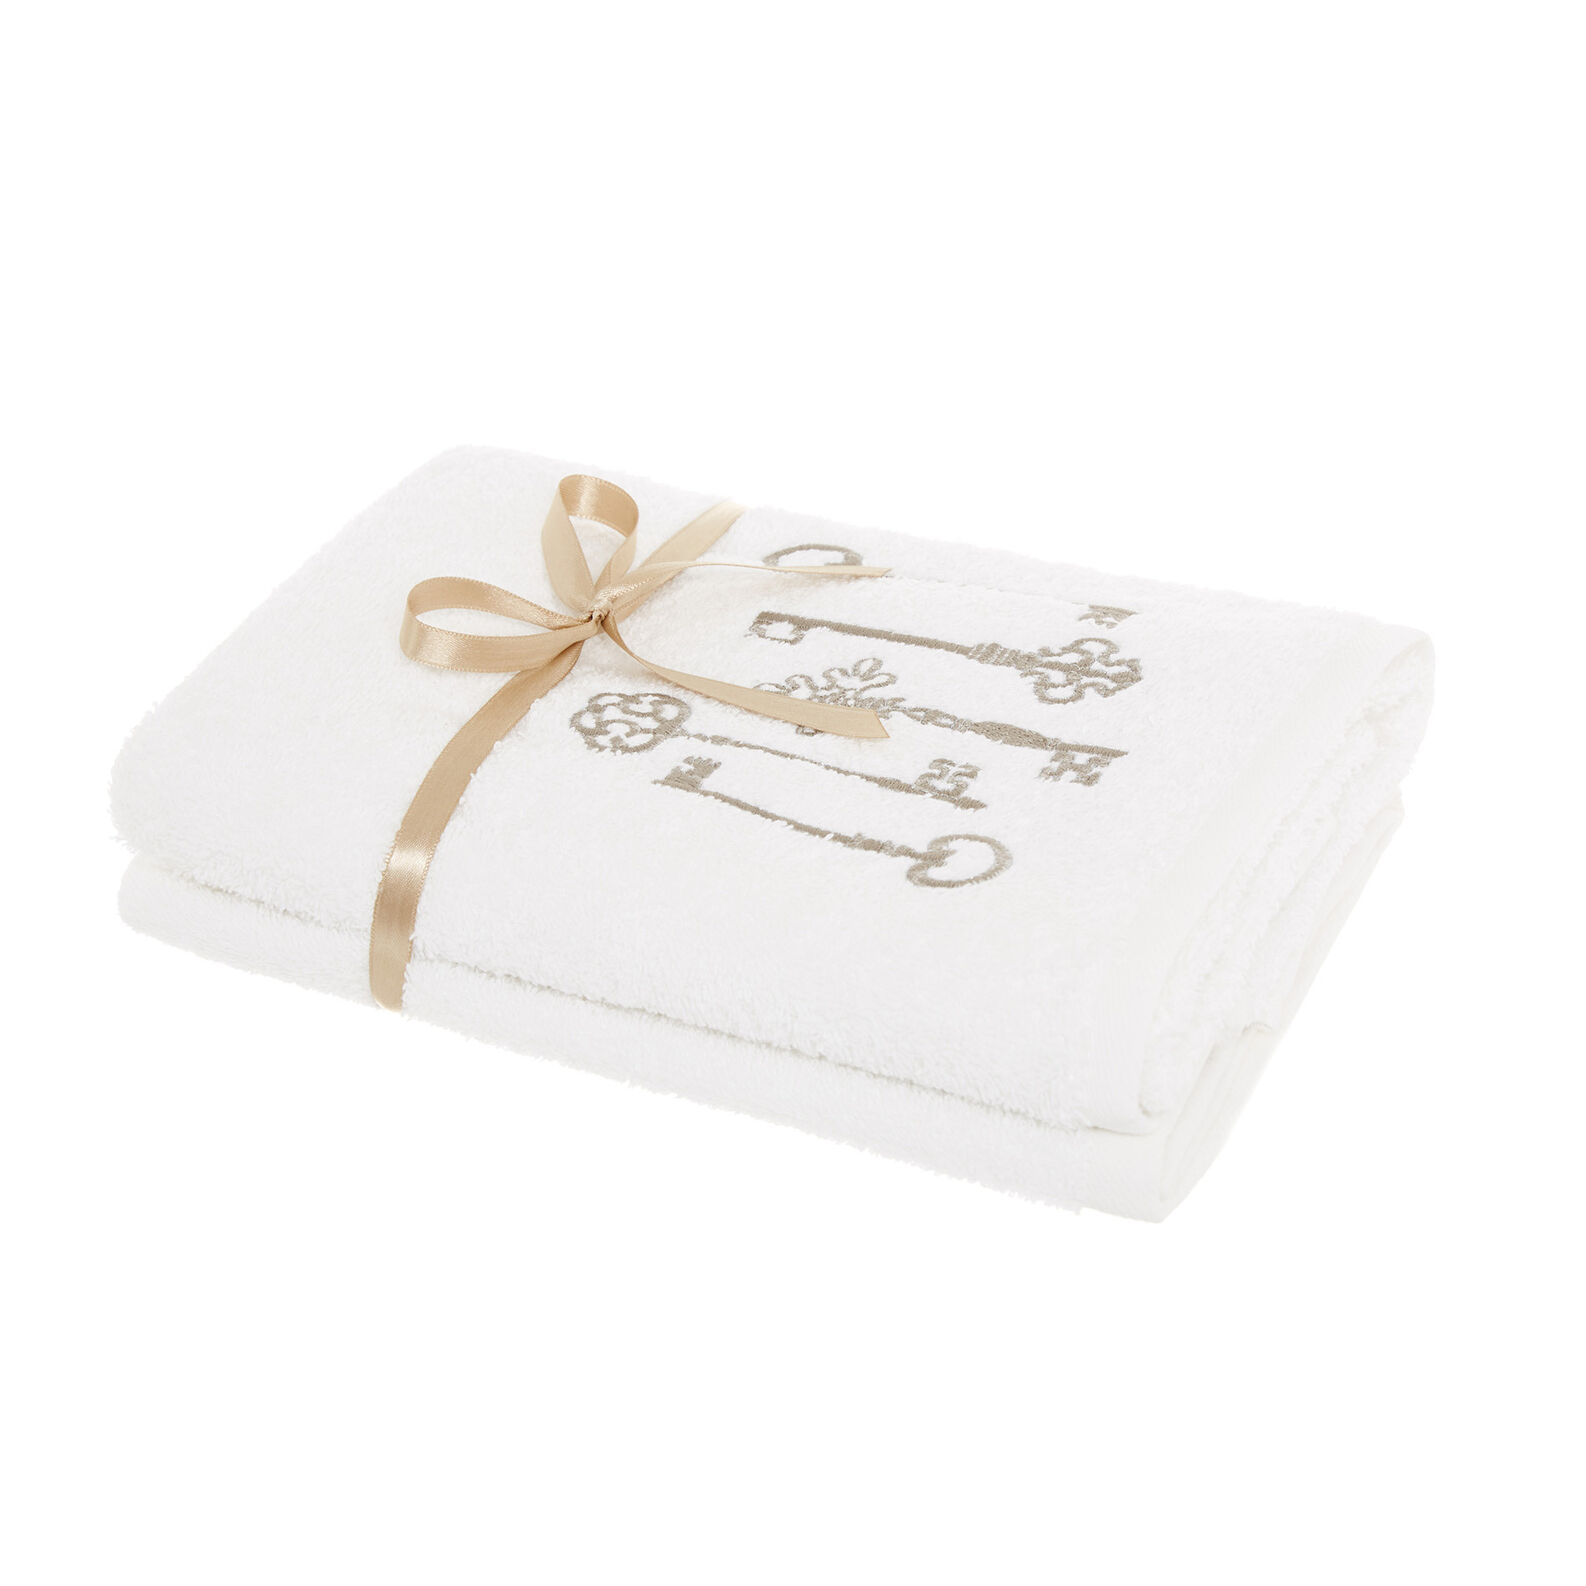 Set of 2 towels with embroidered keys